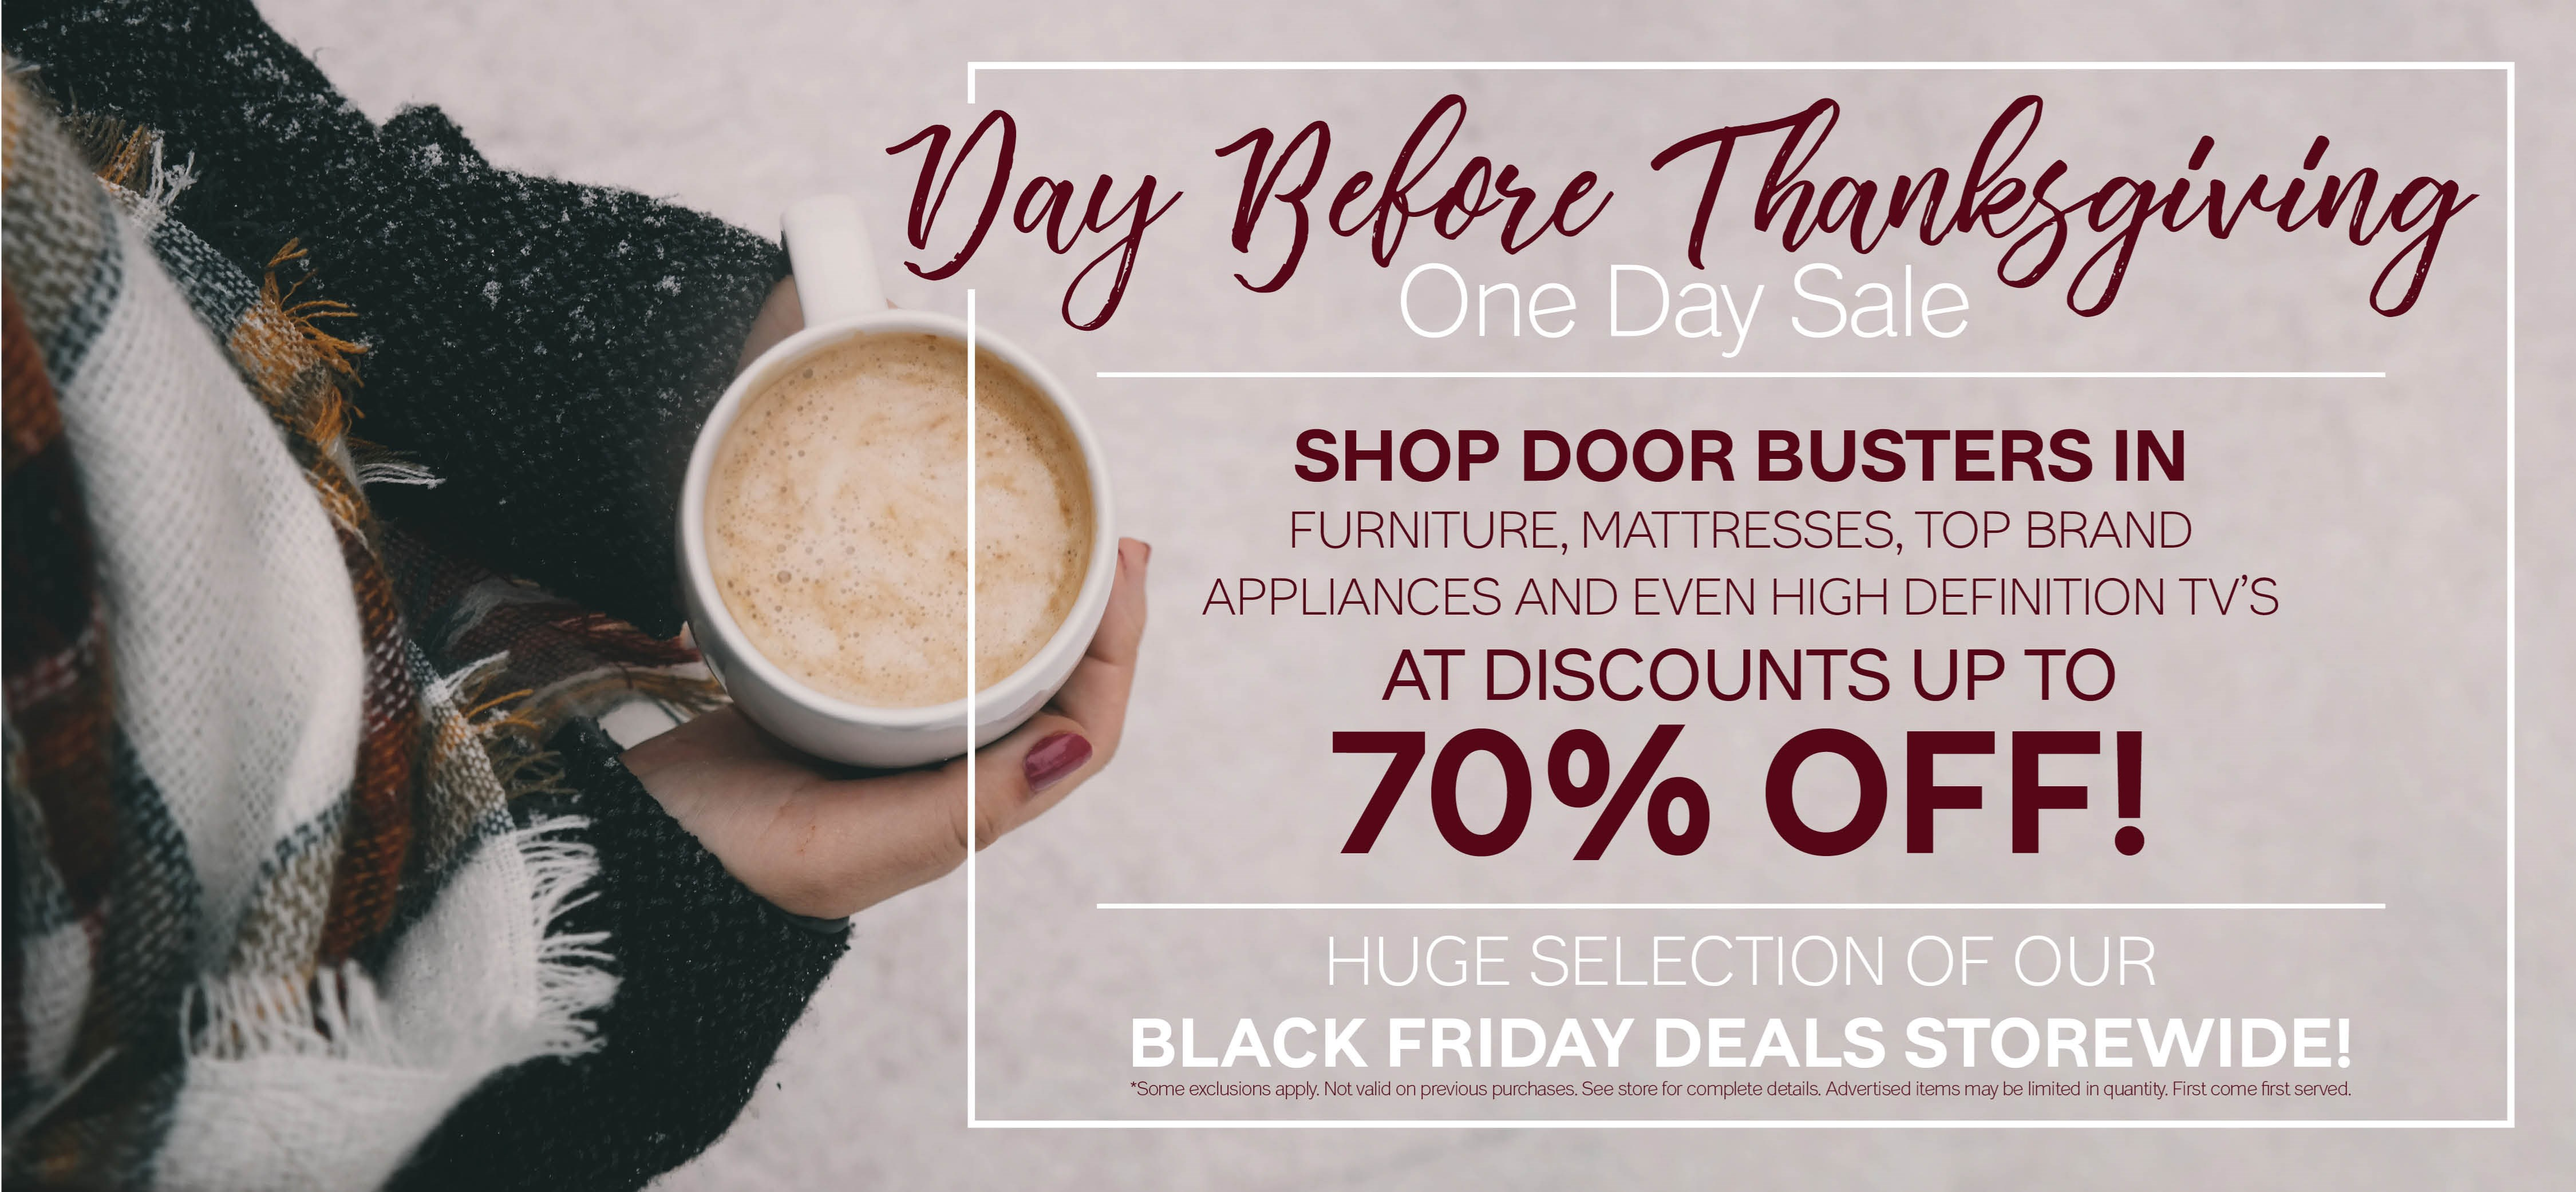 Furniture & ApplianceMart Day Before Thanksgiving Sale